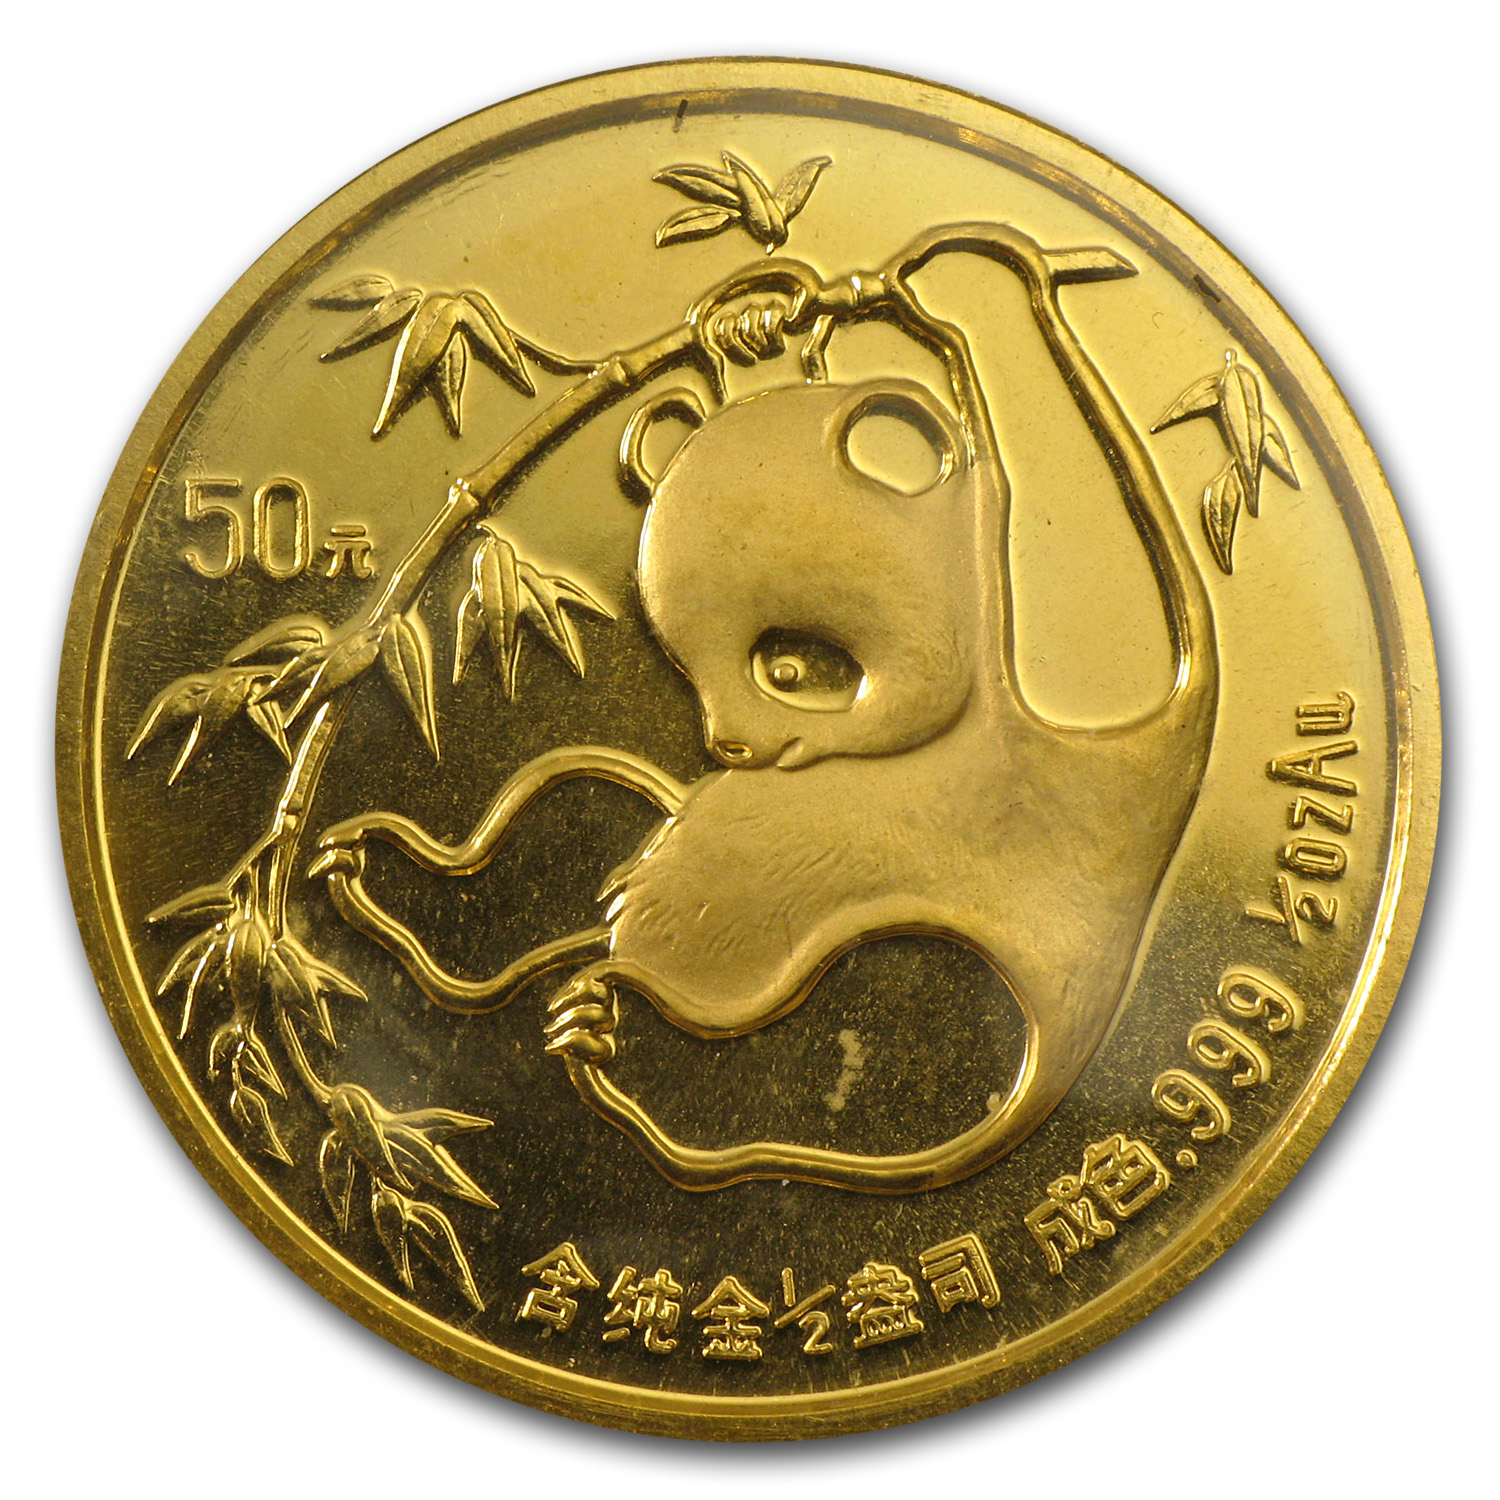 1985 China 1/2 oz Gold Panda BU (Sealed)